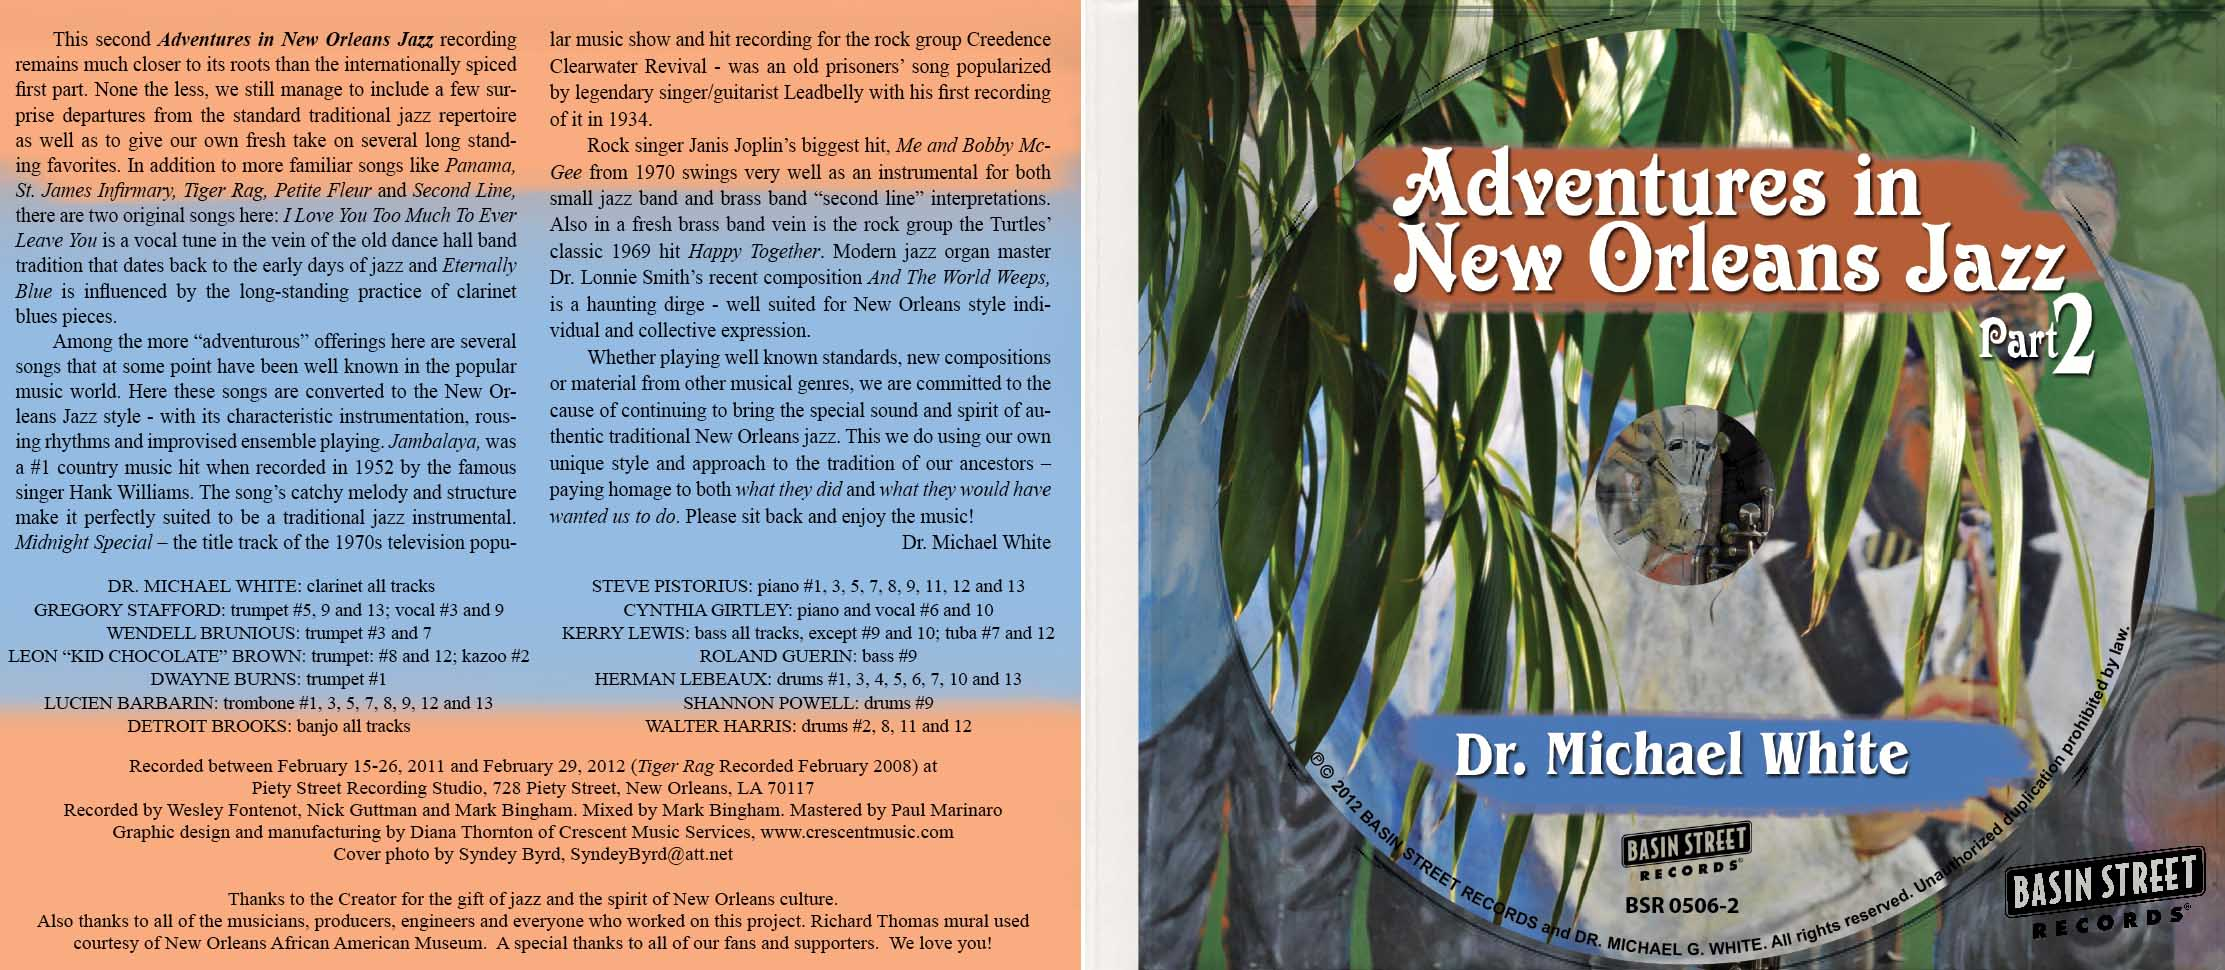 Dr Michael White - Adventures 23